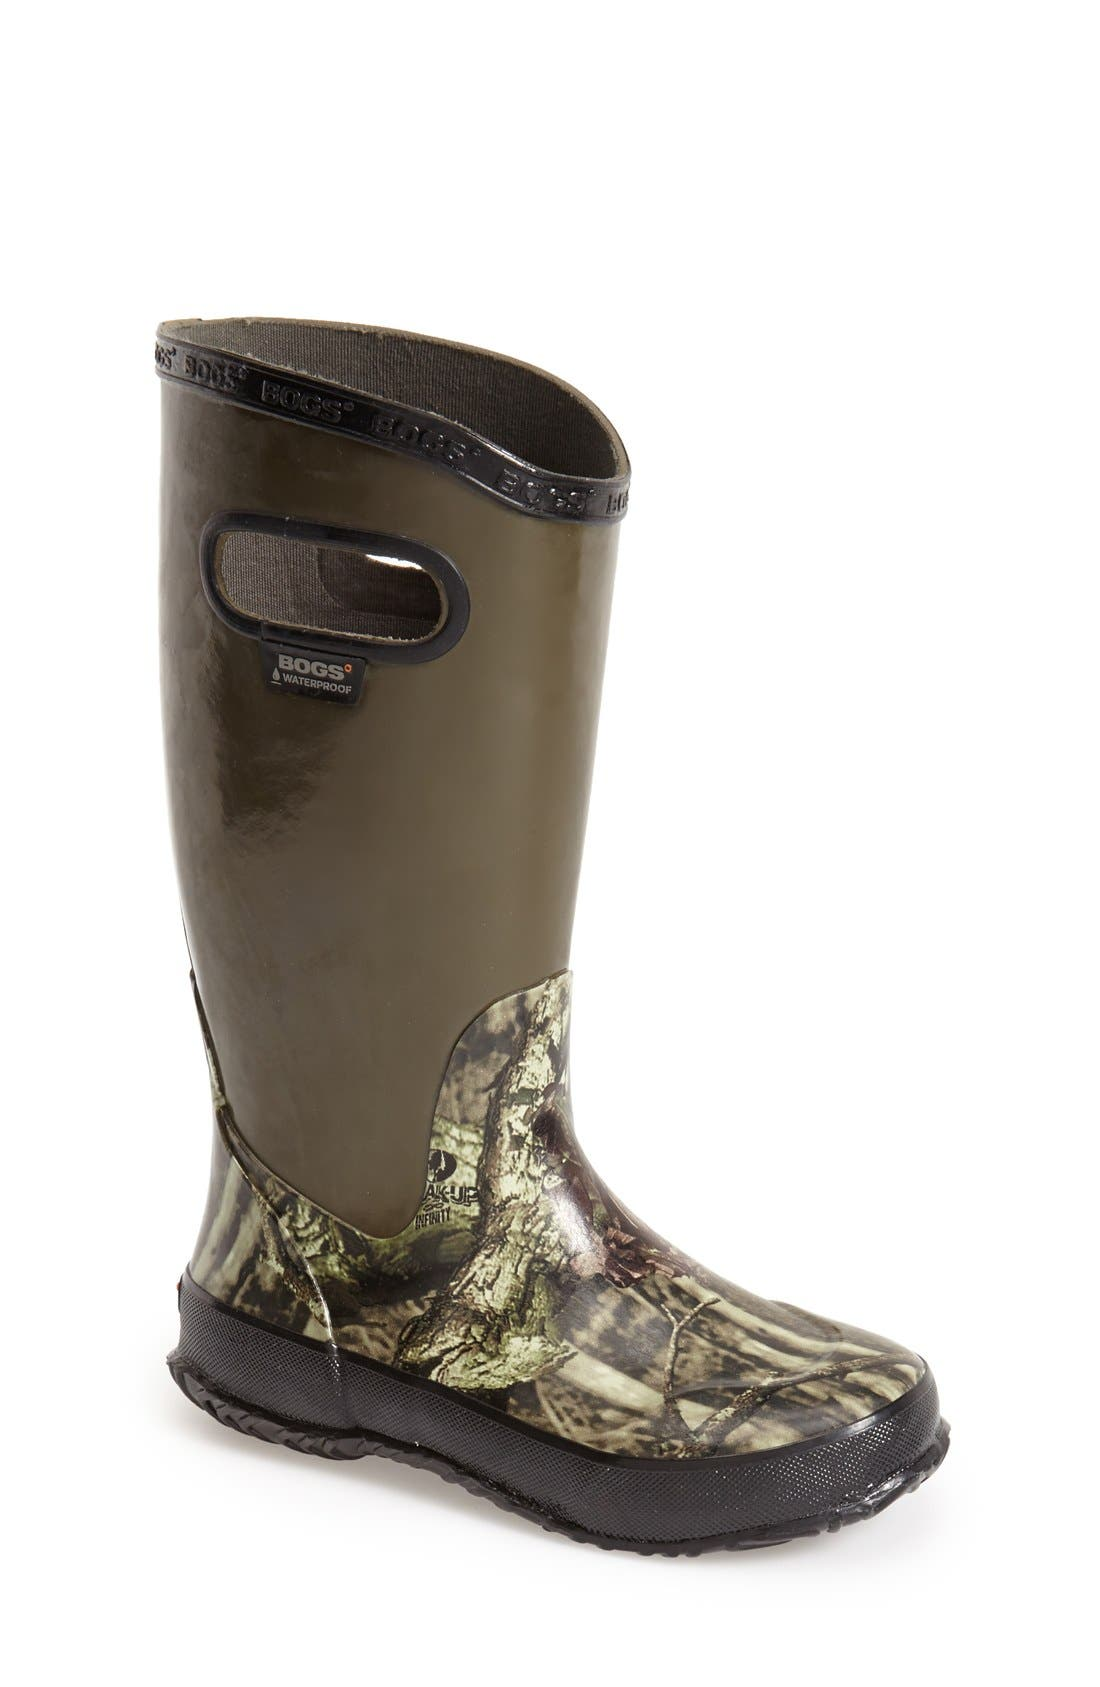 Alternate Image 1 Selected - Bogs Hunting Waterproof Rubber Rain Boot (Walker, Toddler, Little Kid & Big Kid)